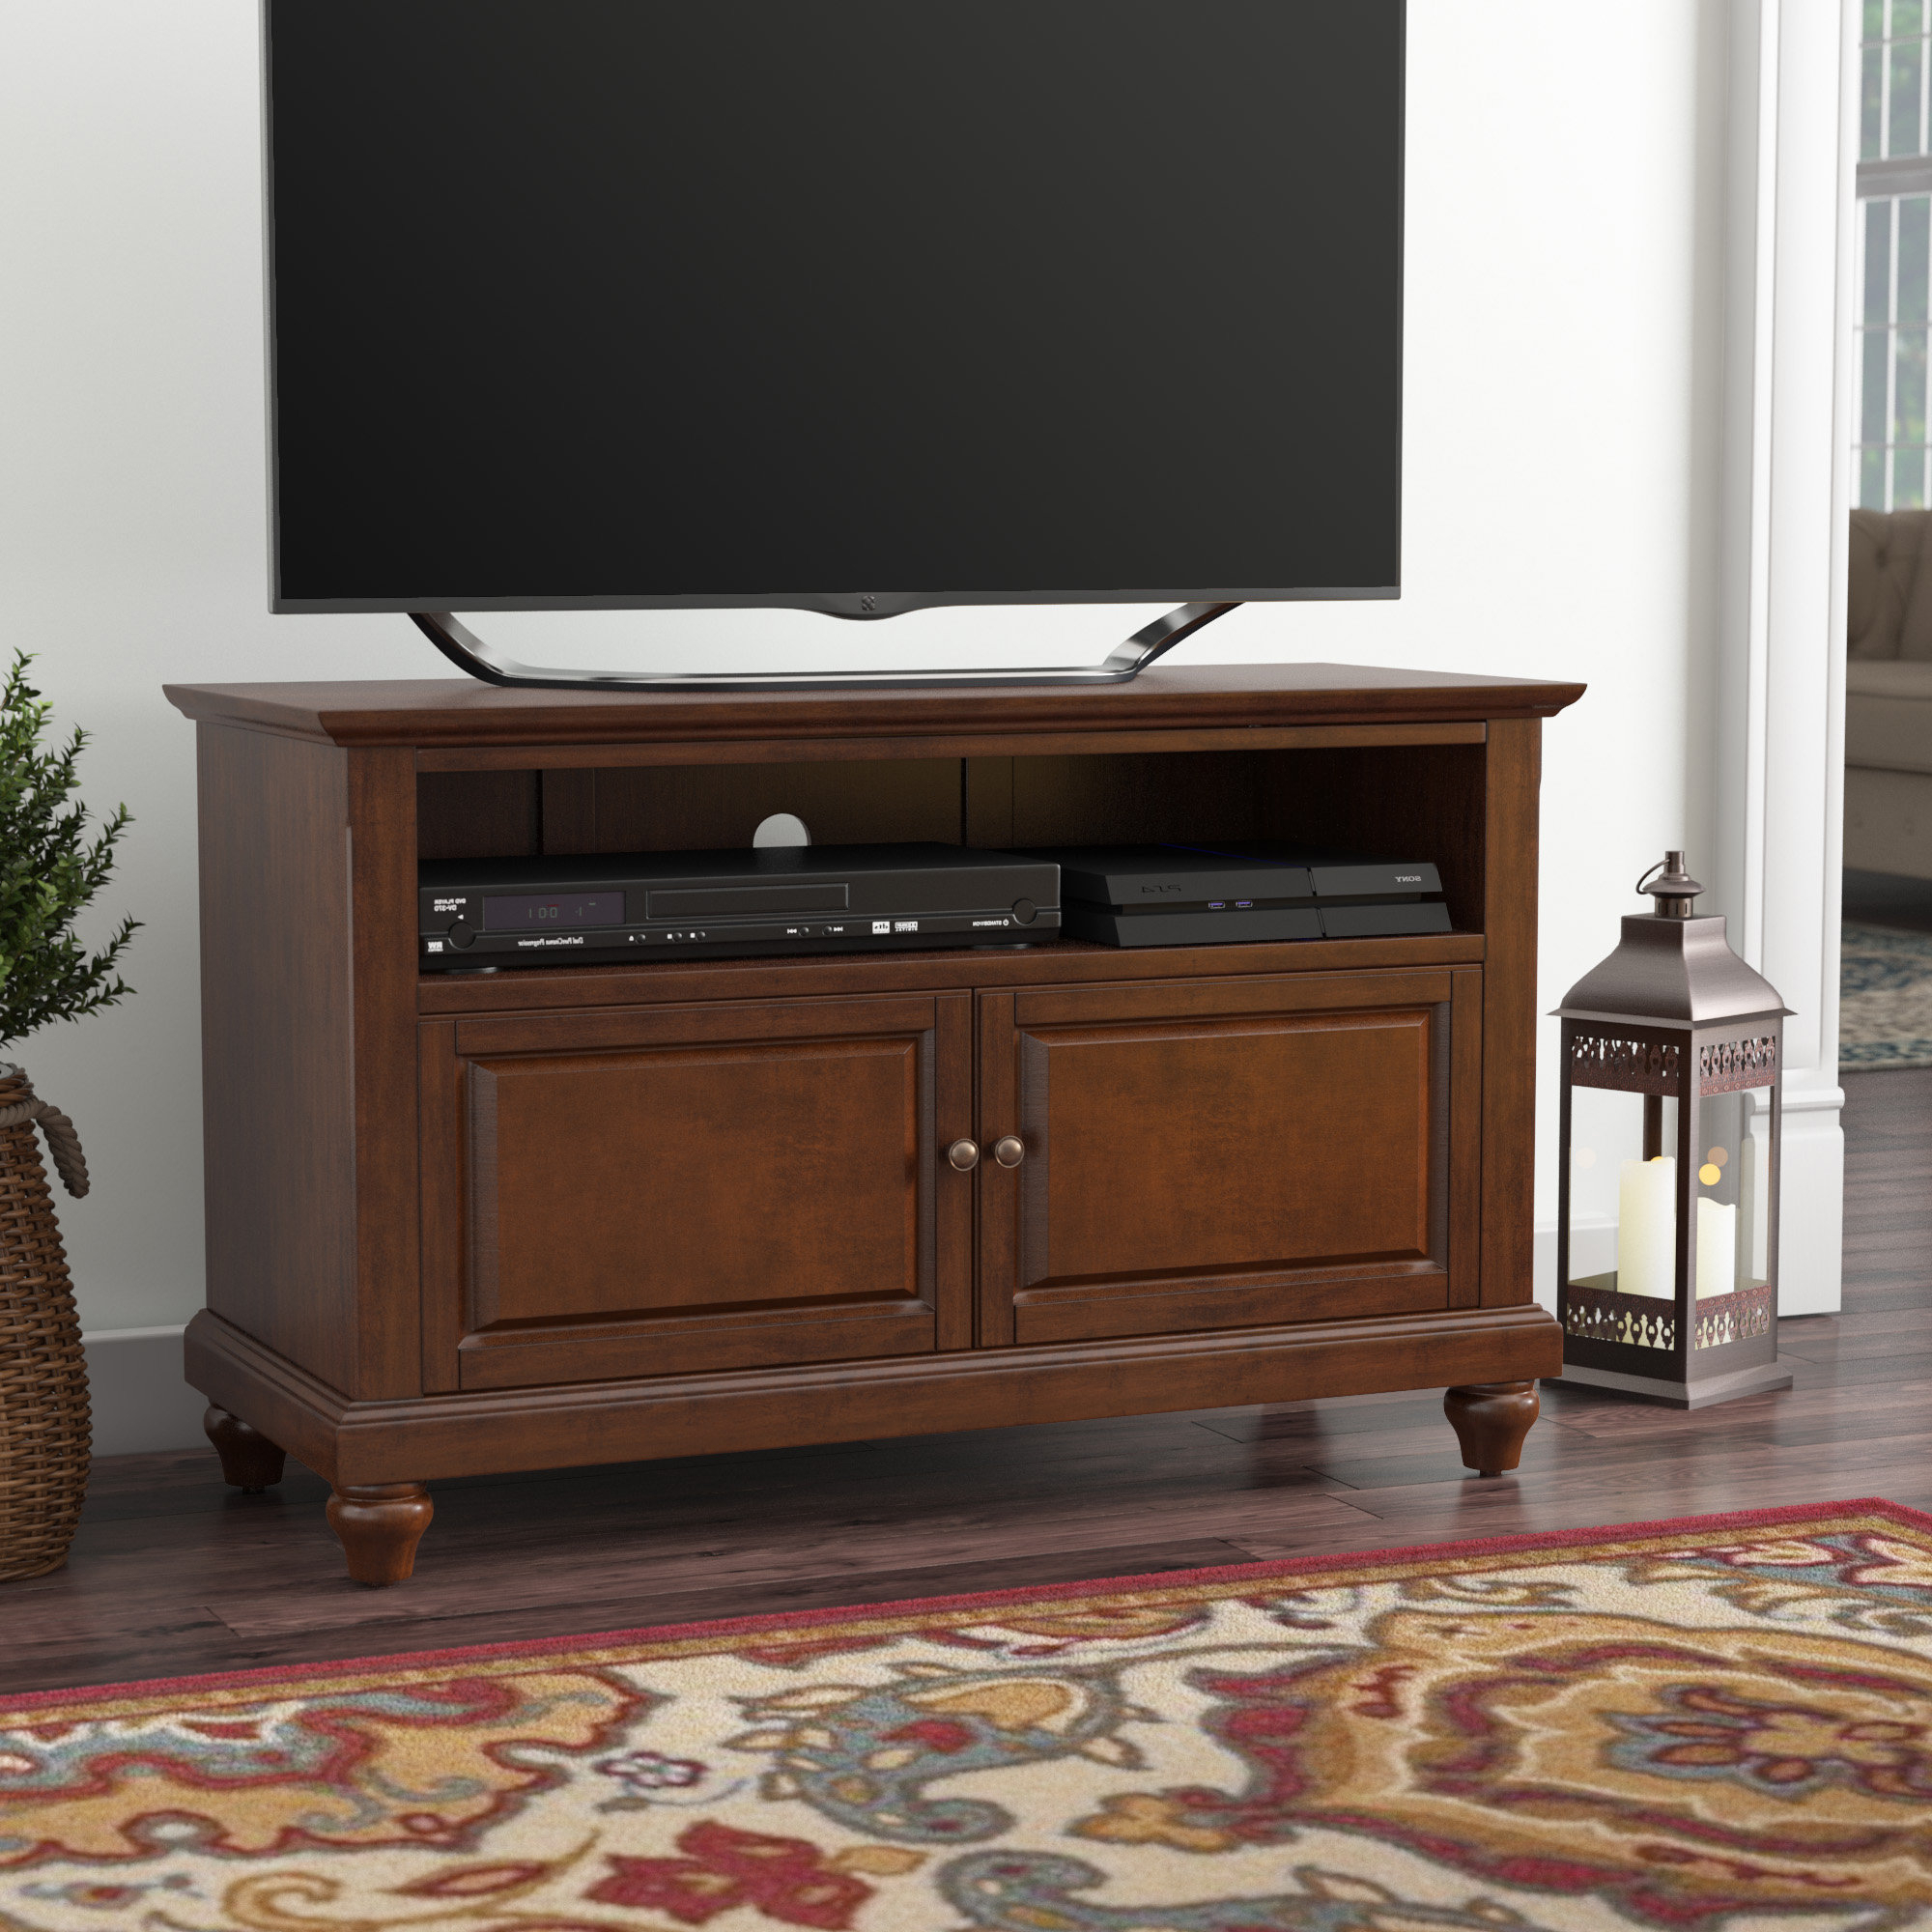 "Chunky Tv Cabinets With Trendy Three Posts Goreville Tv Stand For Tvs Up To 42"" & Reviews (View 3 of 20)"